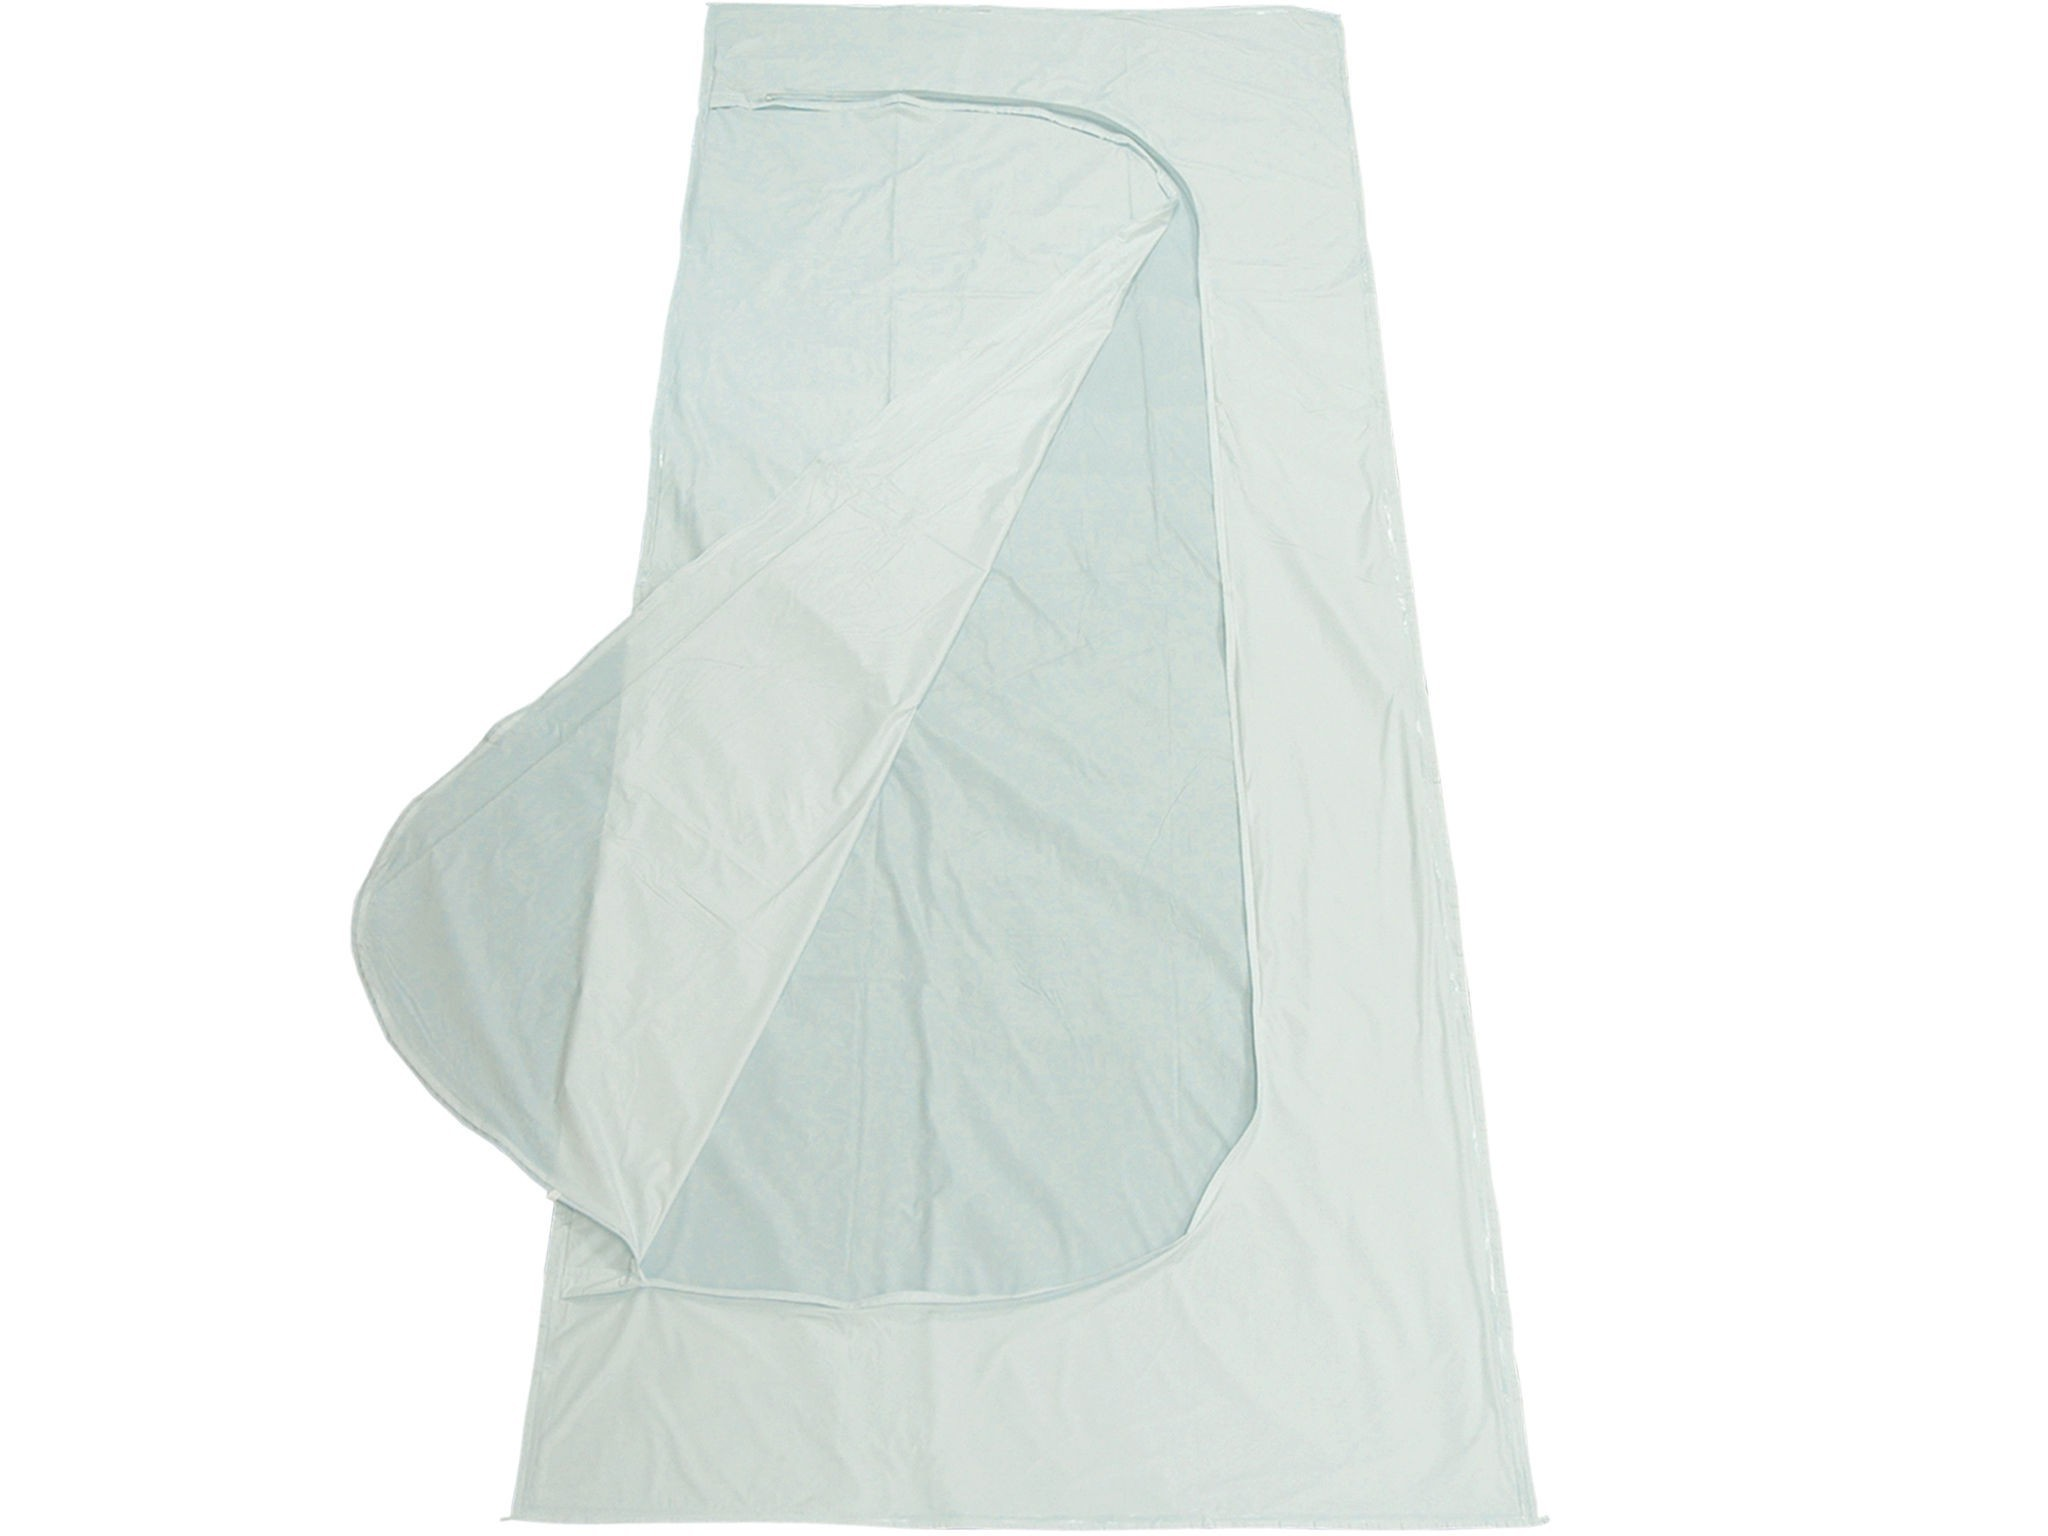 Standard White PEVA Chlorine-Free Body Bag - Adult Size